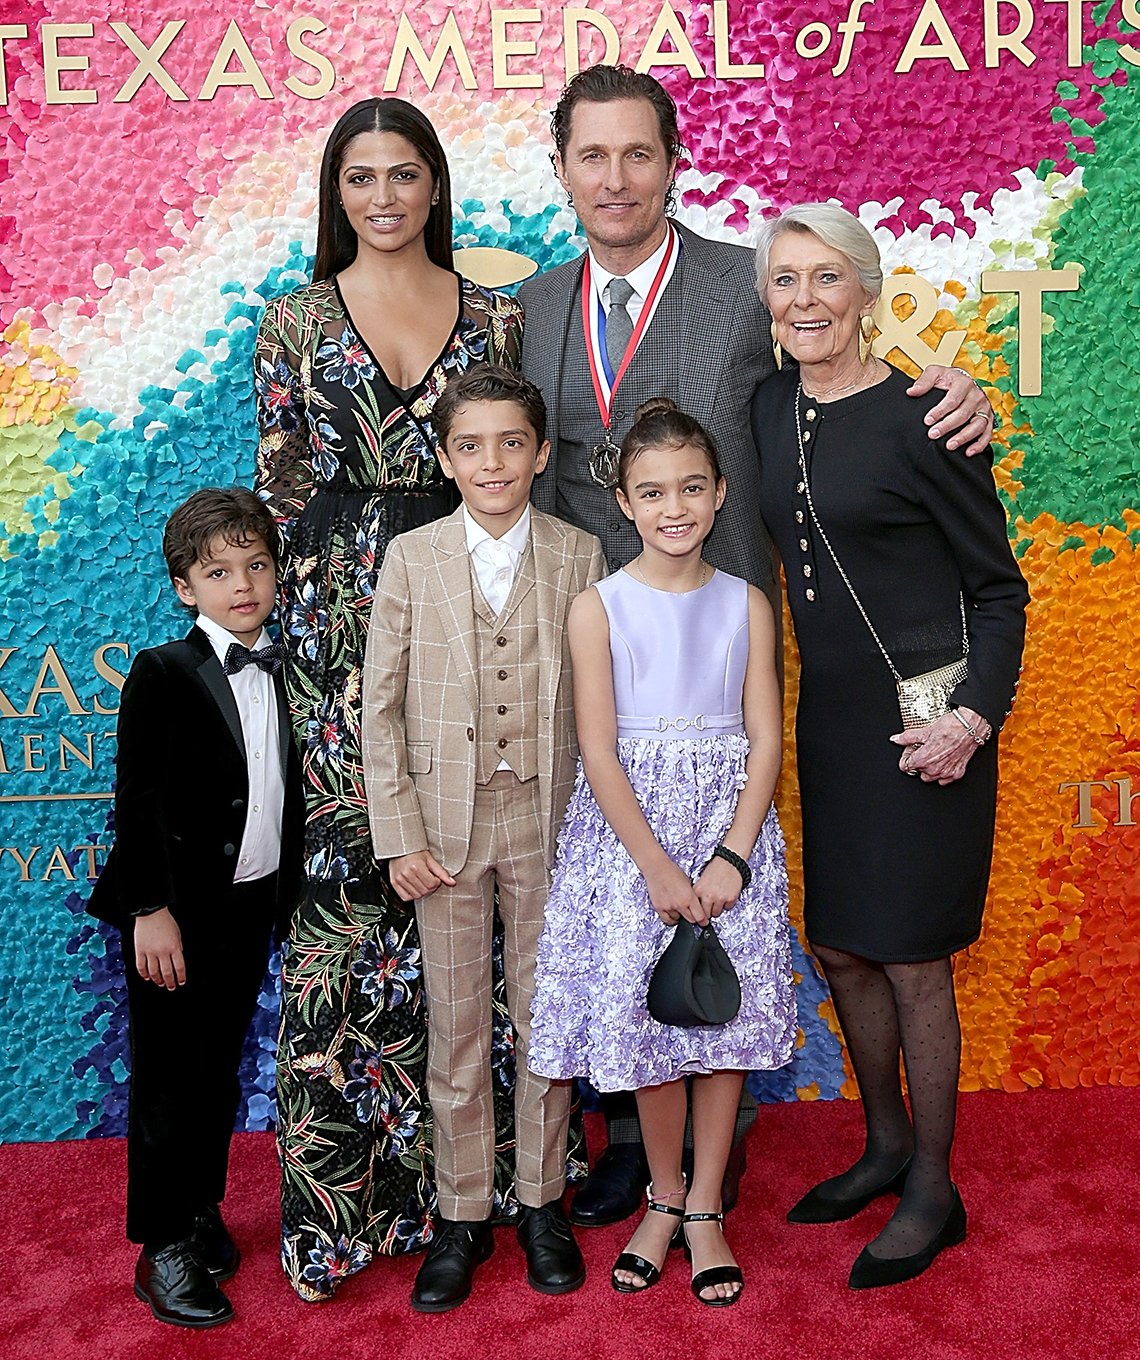 actor matthew mcconaughey with family on red carpet